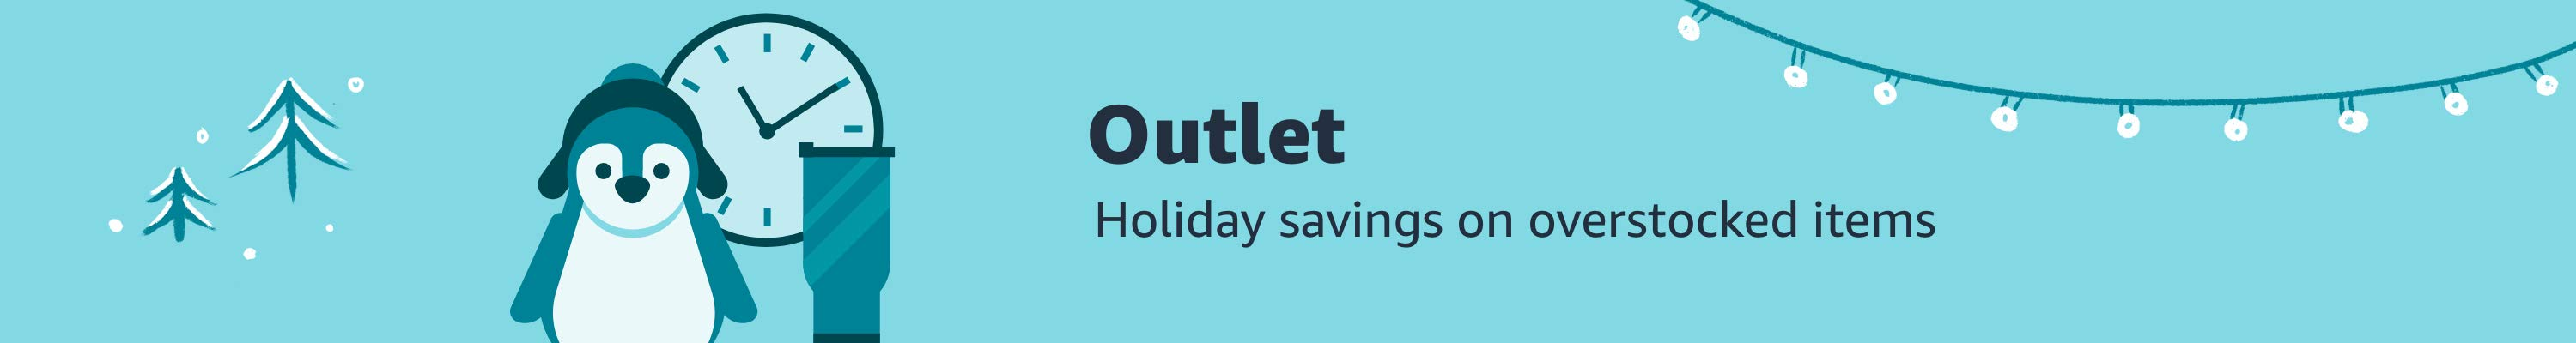 Outlet: Holiday savings on overstocked items